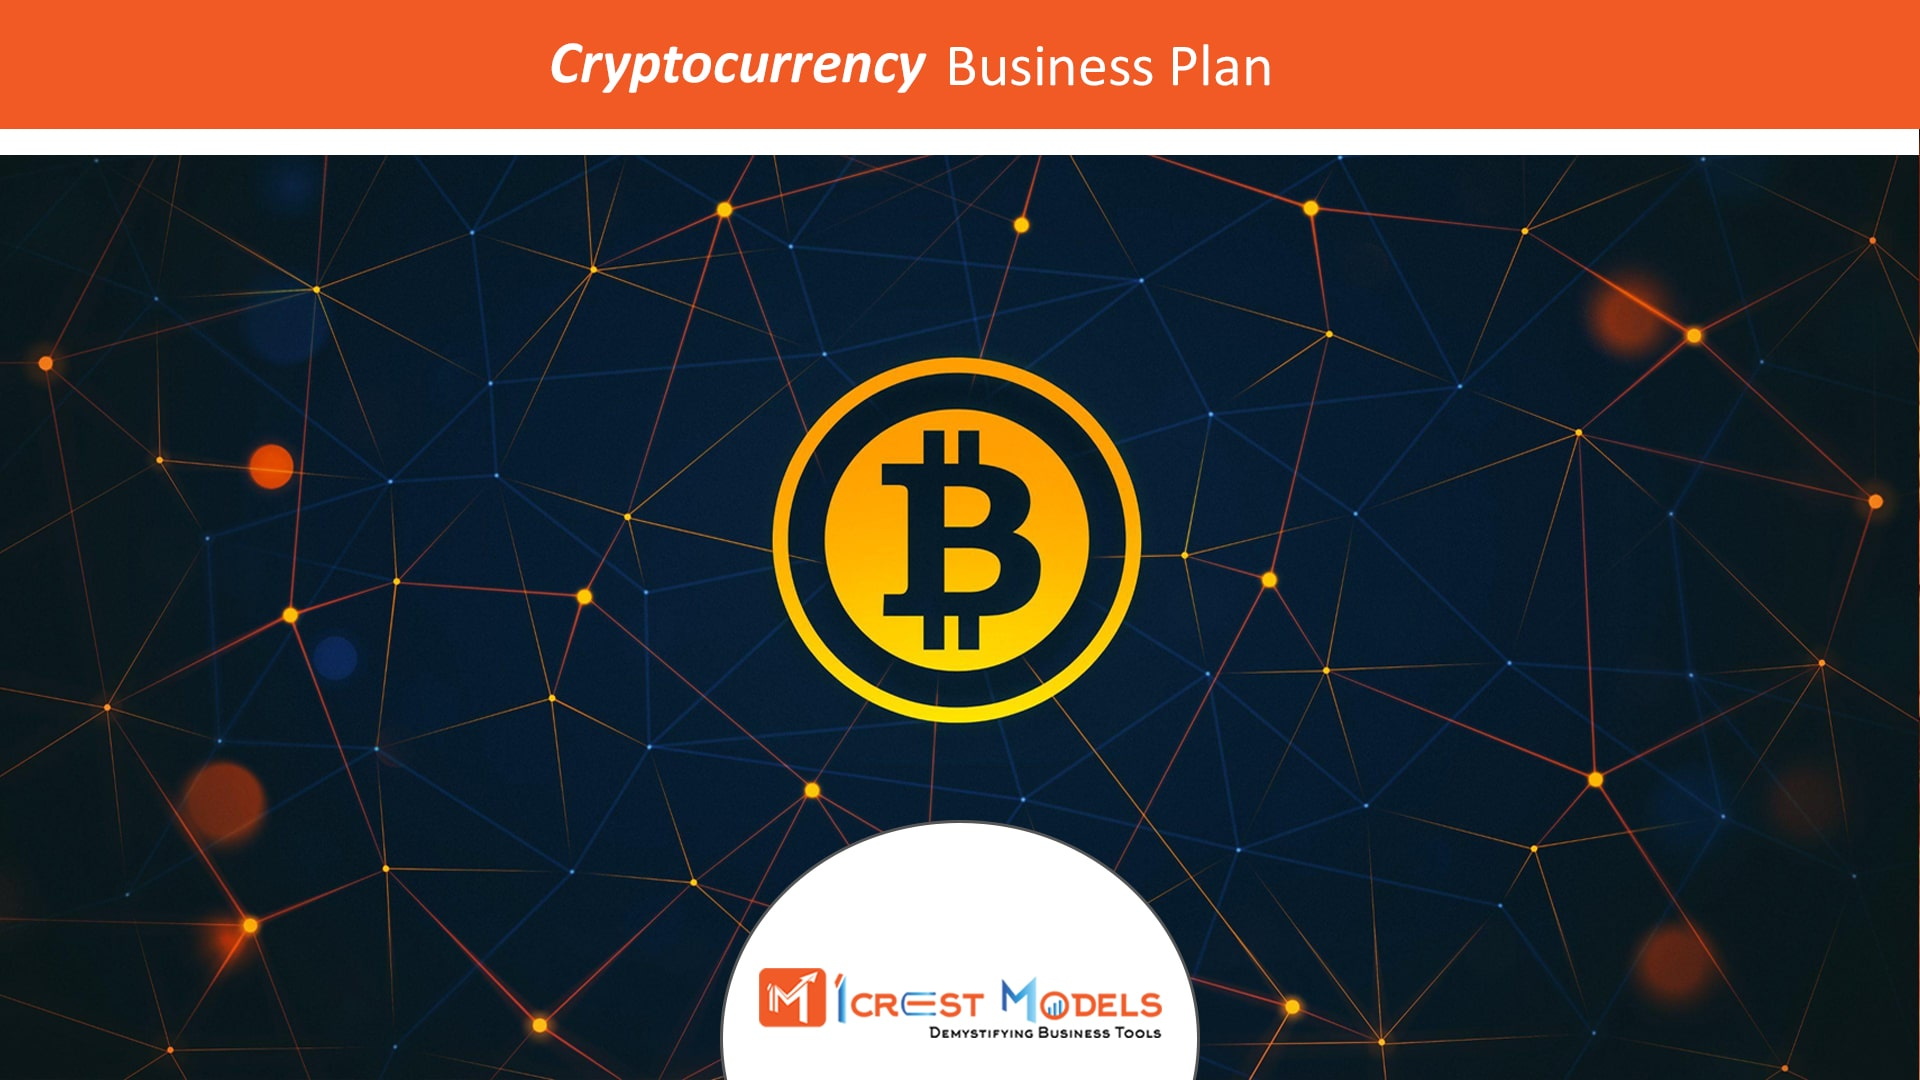 Business Plan of Cryptocurrency Trading Platform